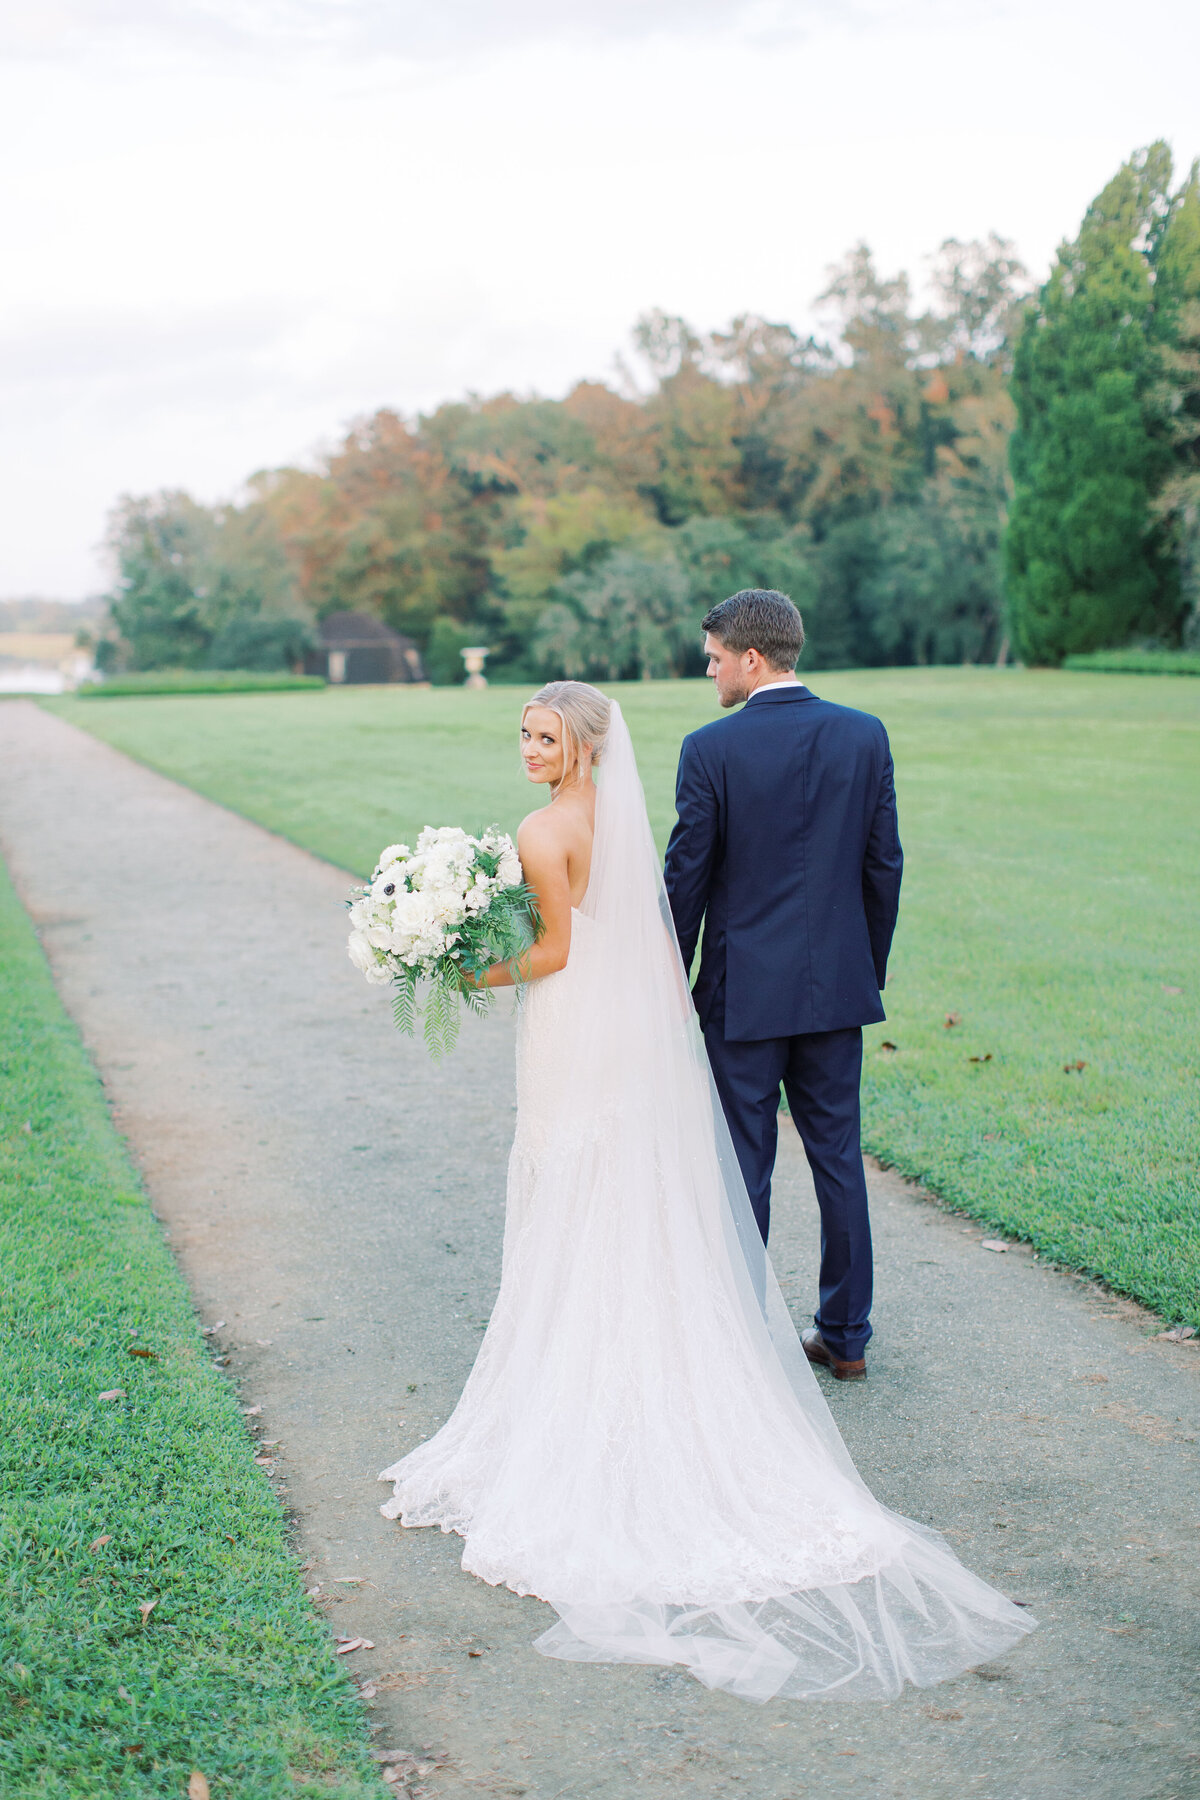 Melton_Wedding__Middleton_Place_Plantation_Charleston_South_Carolina_Jacksonville_Florida_Devon_Donnahoo_Photography__0781